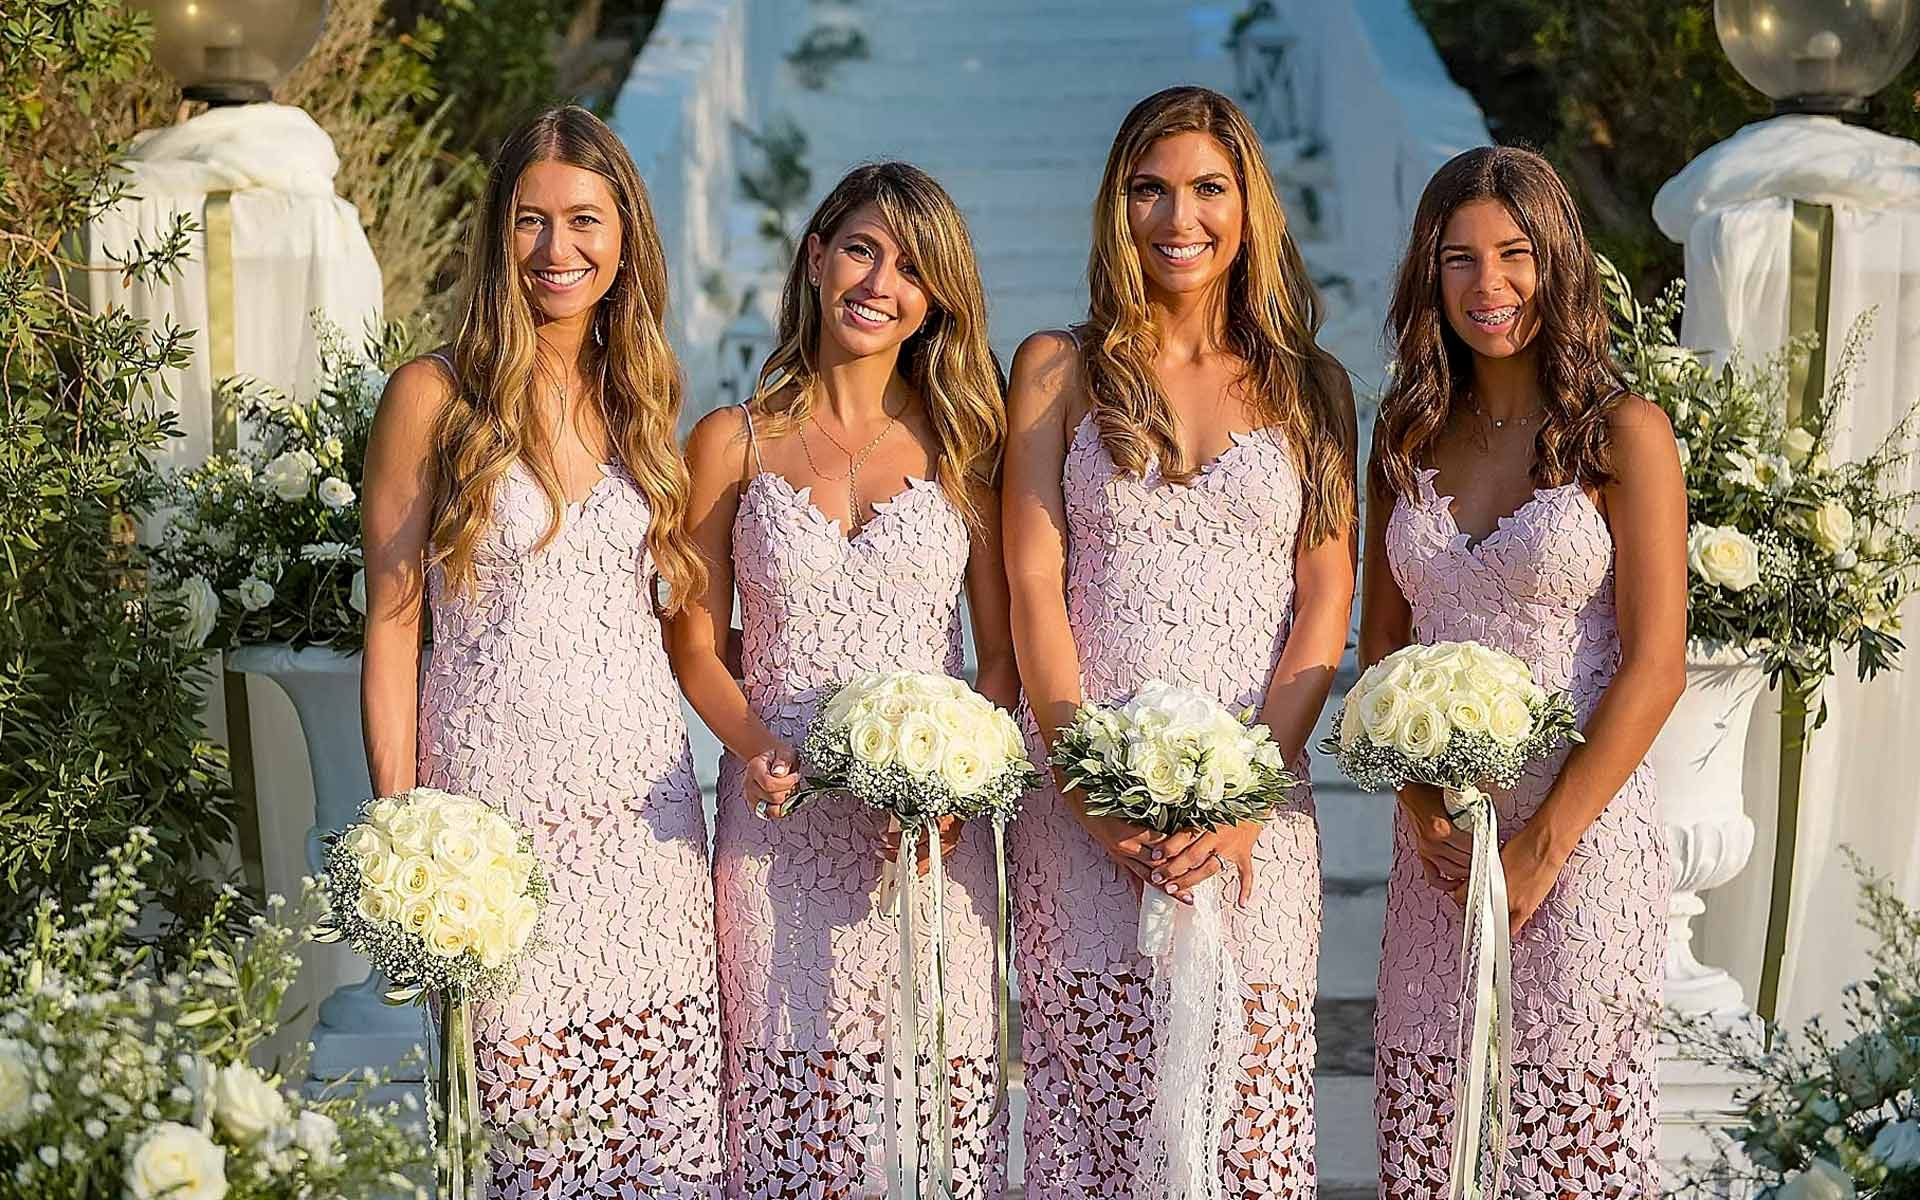 The-Bridesmaids-Are-Posing-While-They-Are-Waiting-For-The-Bride